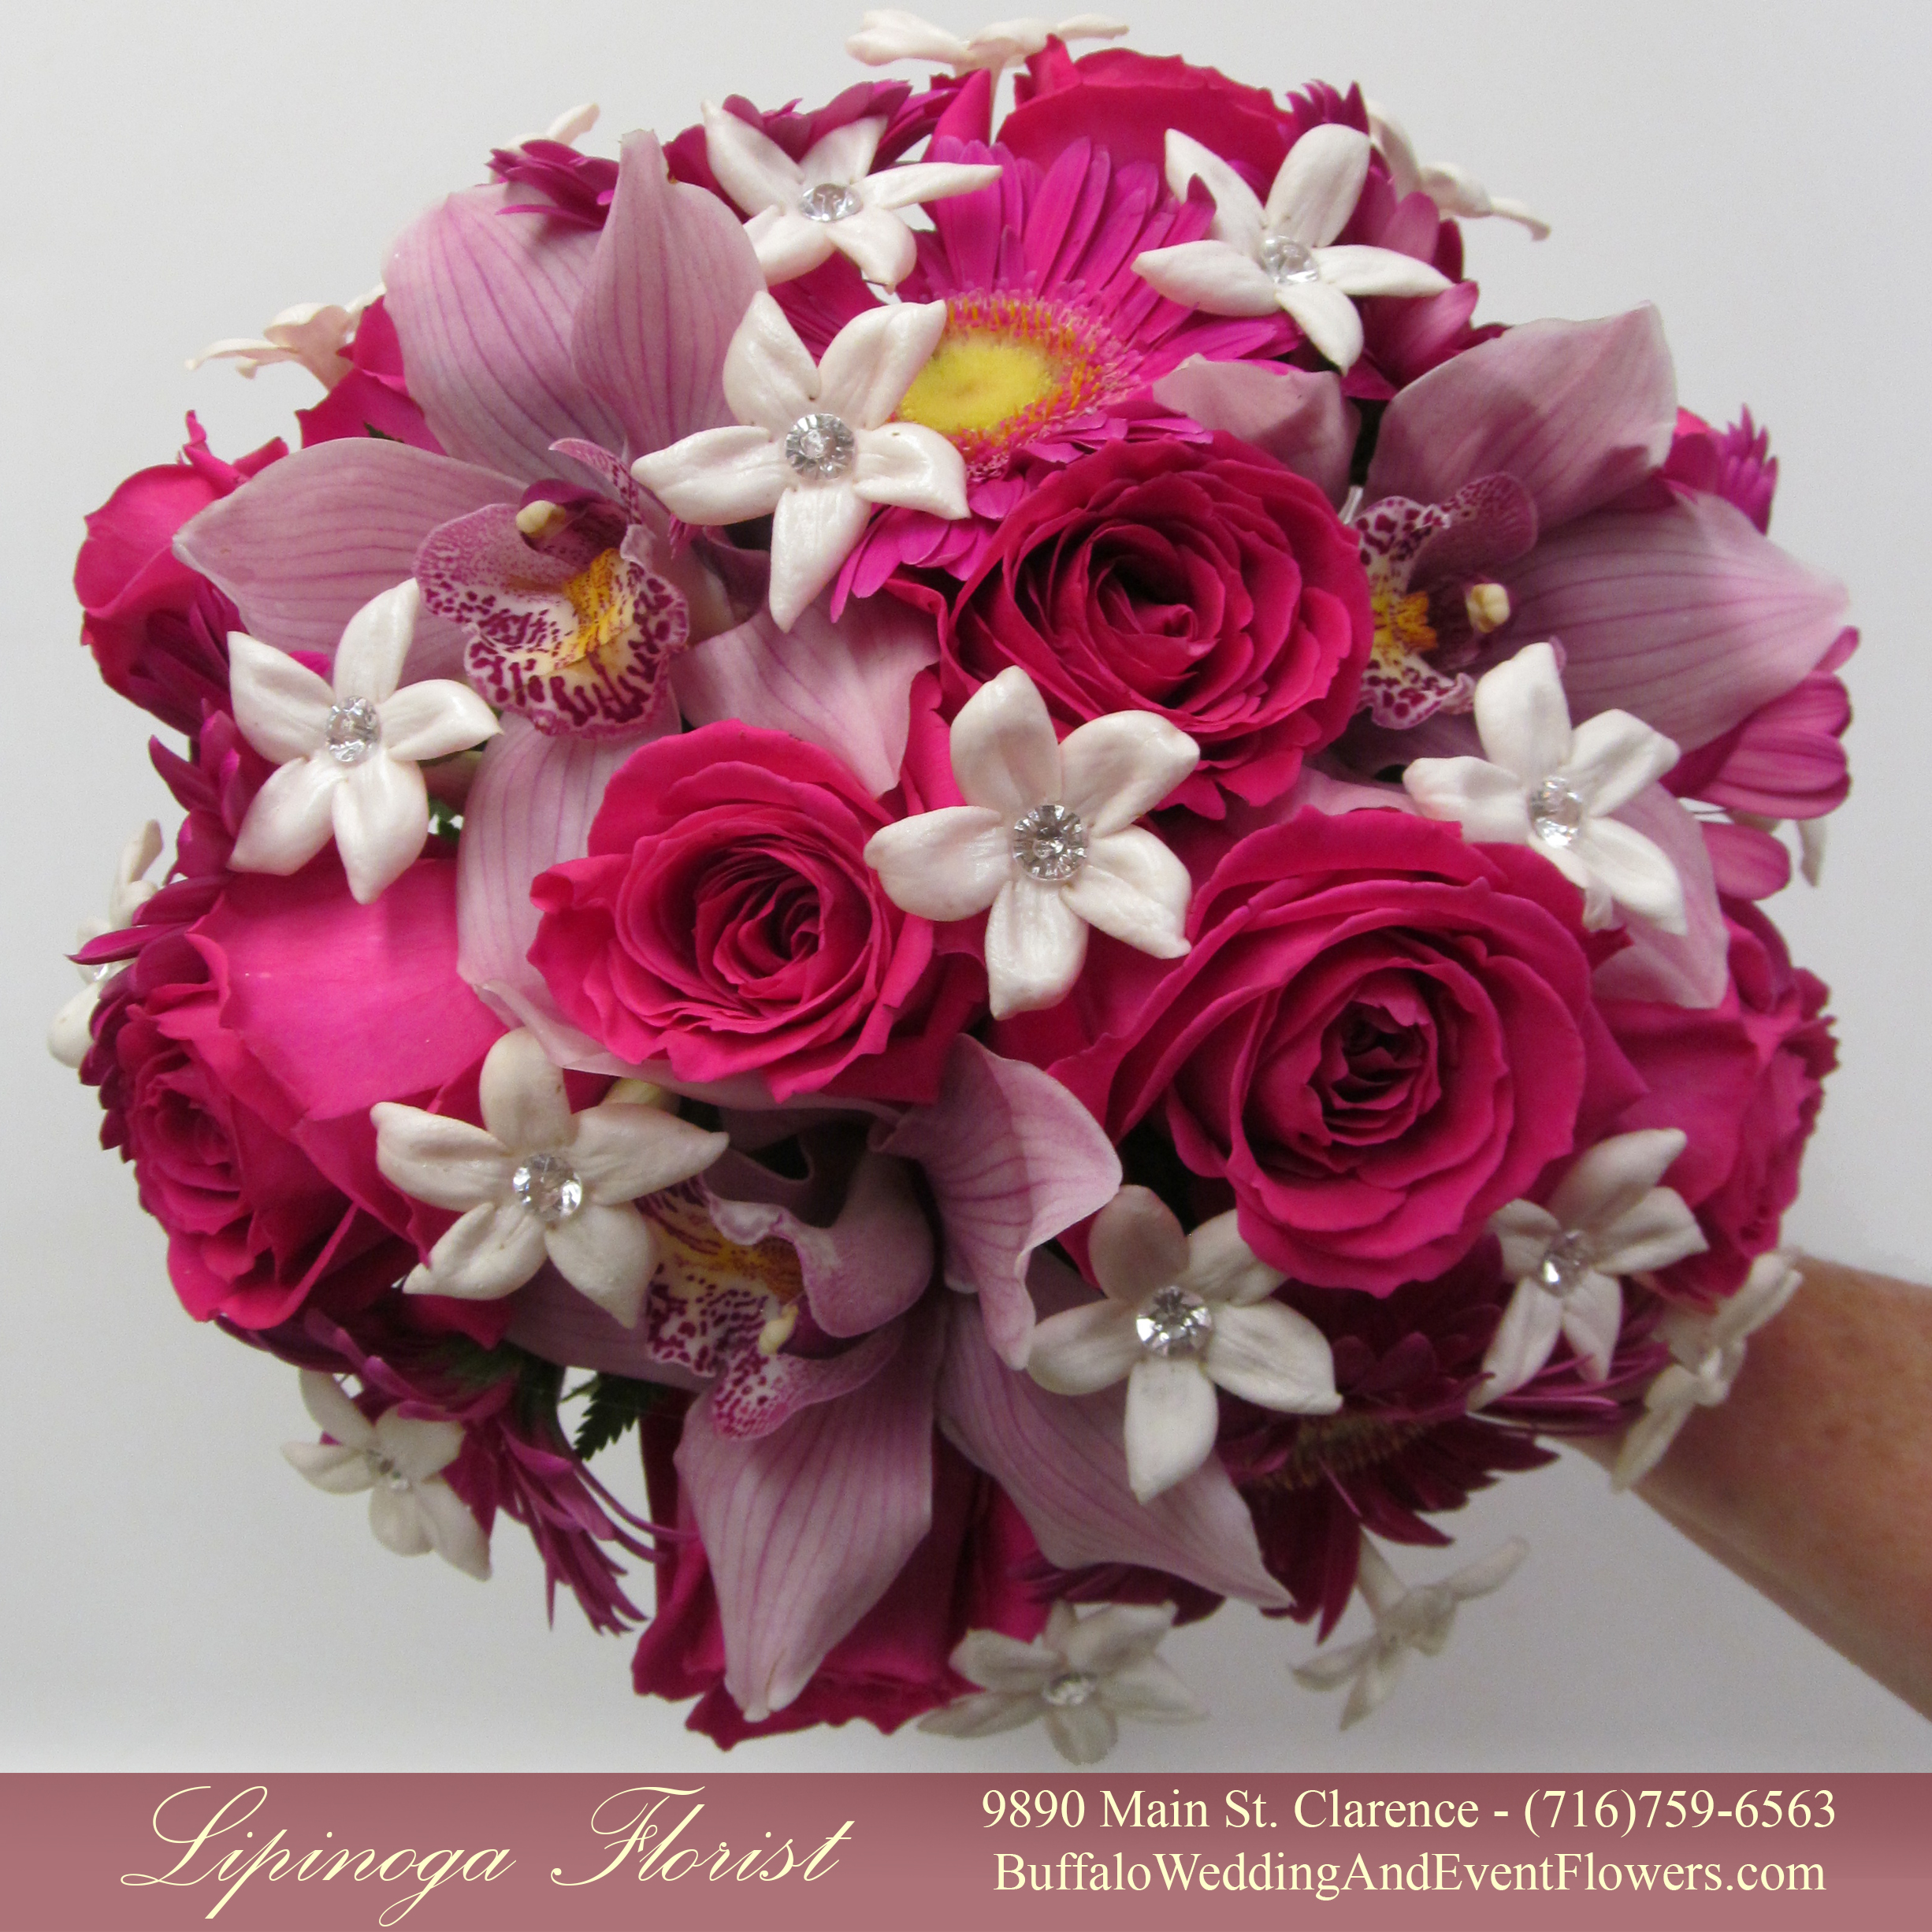 Hot pink wedding flowers buffalo wedding event flowers by wedding flowers hamburg mightylinksfo